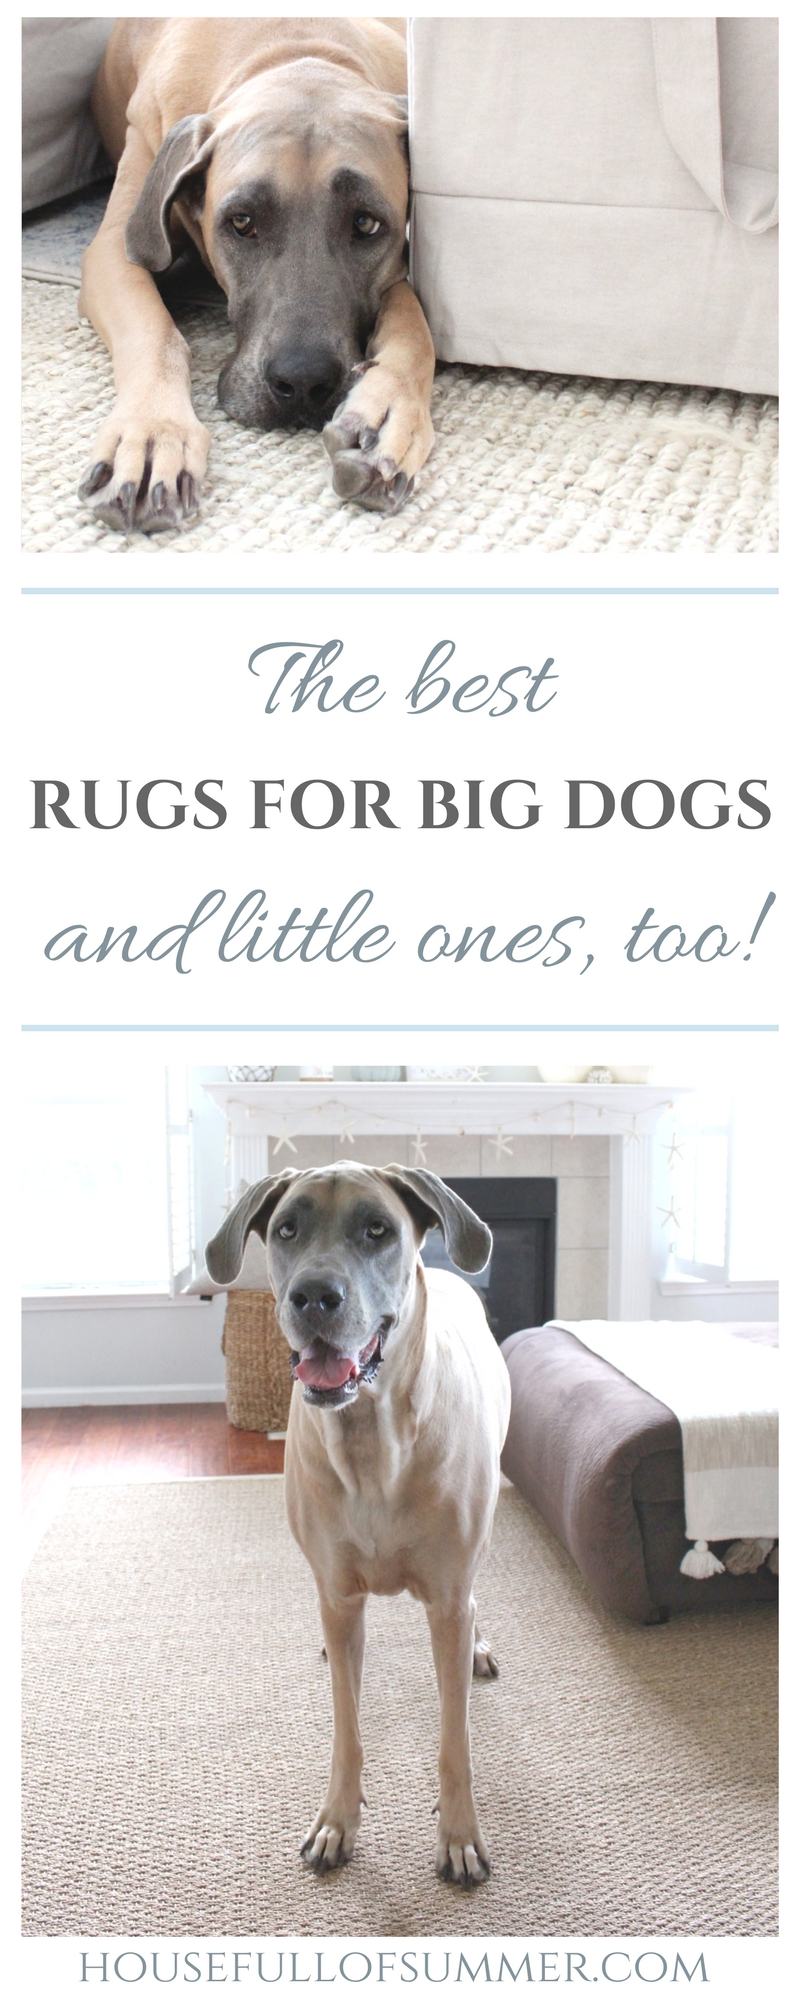 of pet modern how shop to with stains rug rid pets home on for best dead and get area decoration drop ideas homes dogs gorgeous supplies designs online rugs